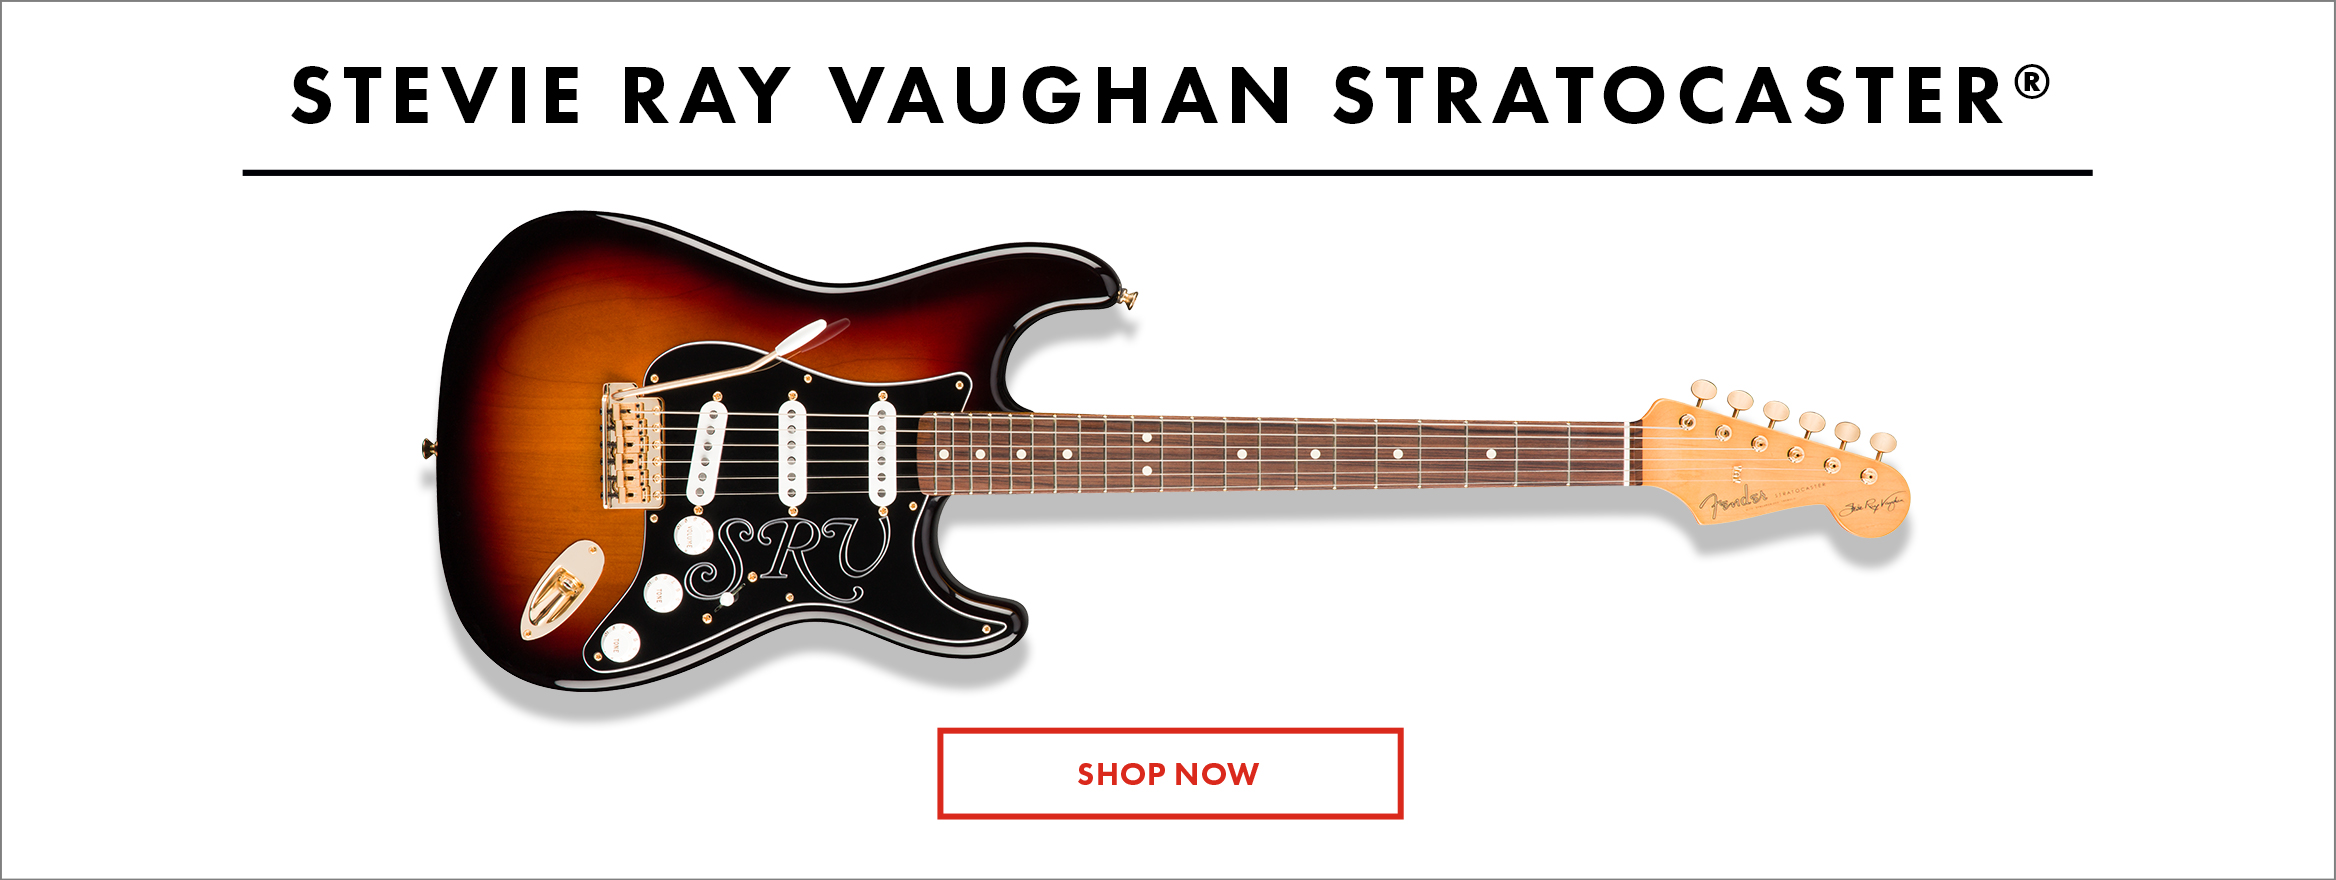 Wed Editorial 0728 20 Images for Stratocaster Article Update StevieRayVaughanStrat